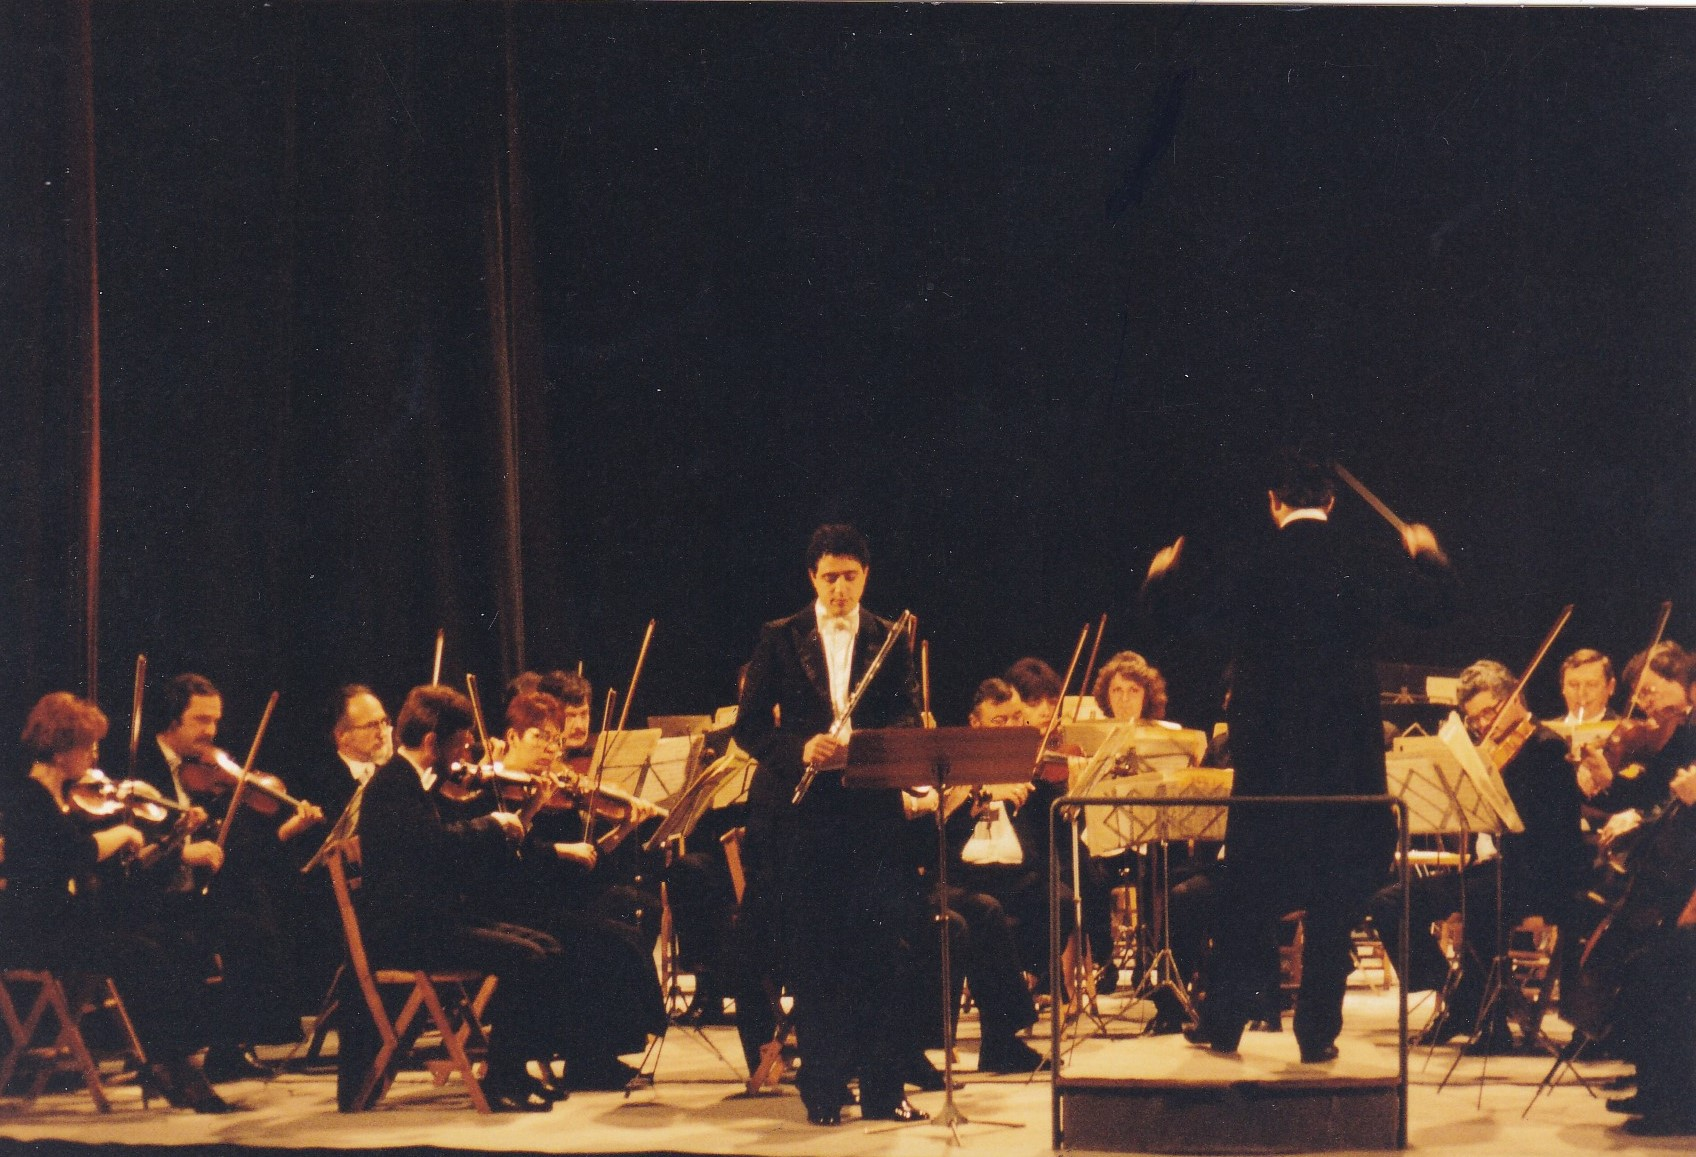 Solo Concert with the Oradea State Philharmonic Orchestra (Campobasso, Italy, 1991)